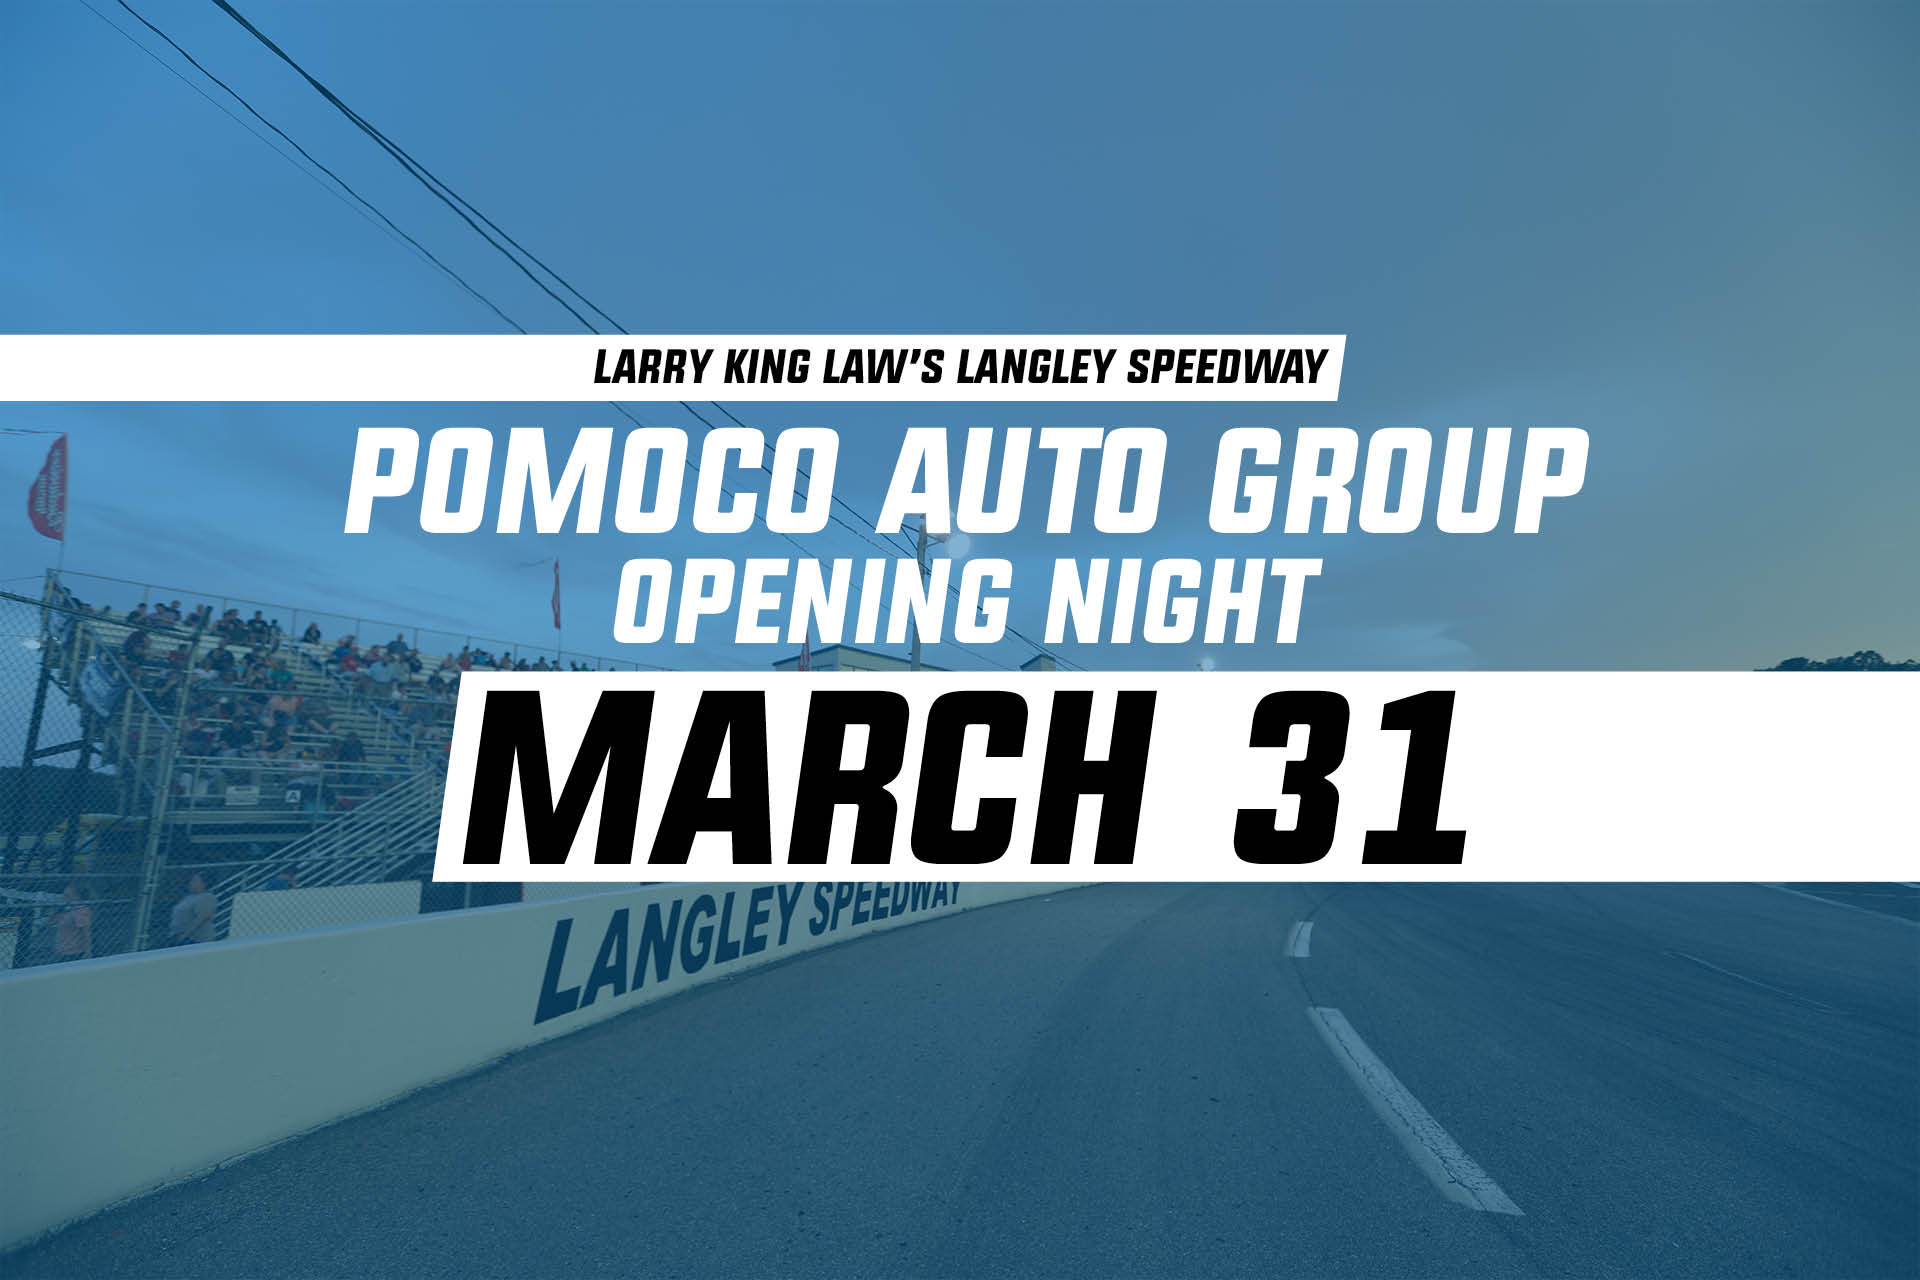 Law Auto Group >> Pomoco Auto Group Opening Night Race Day Schedule Larry King Law S